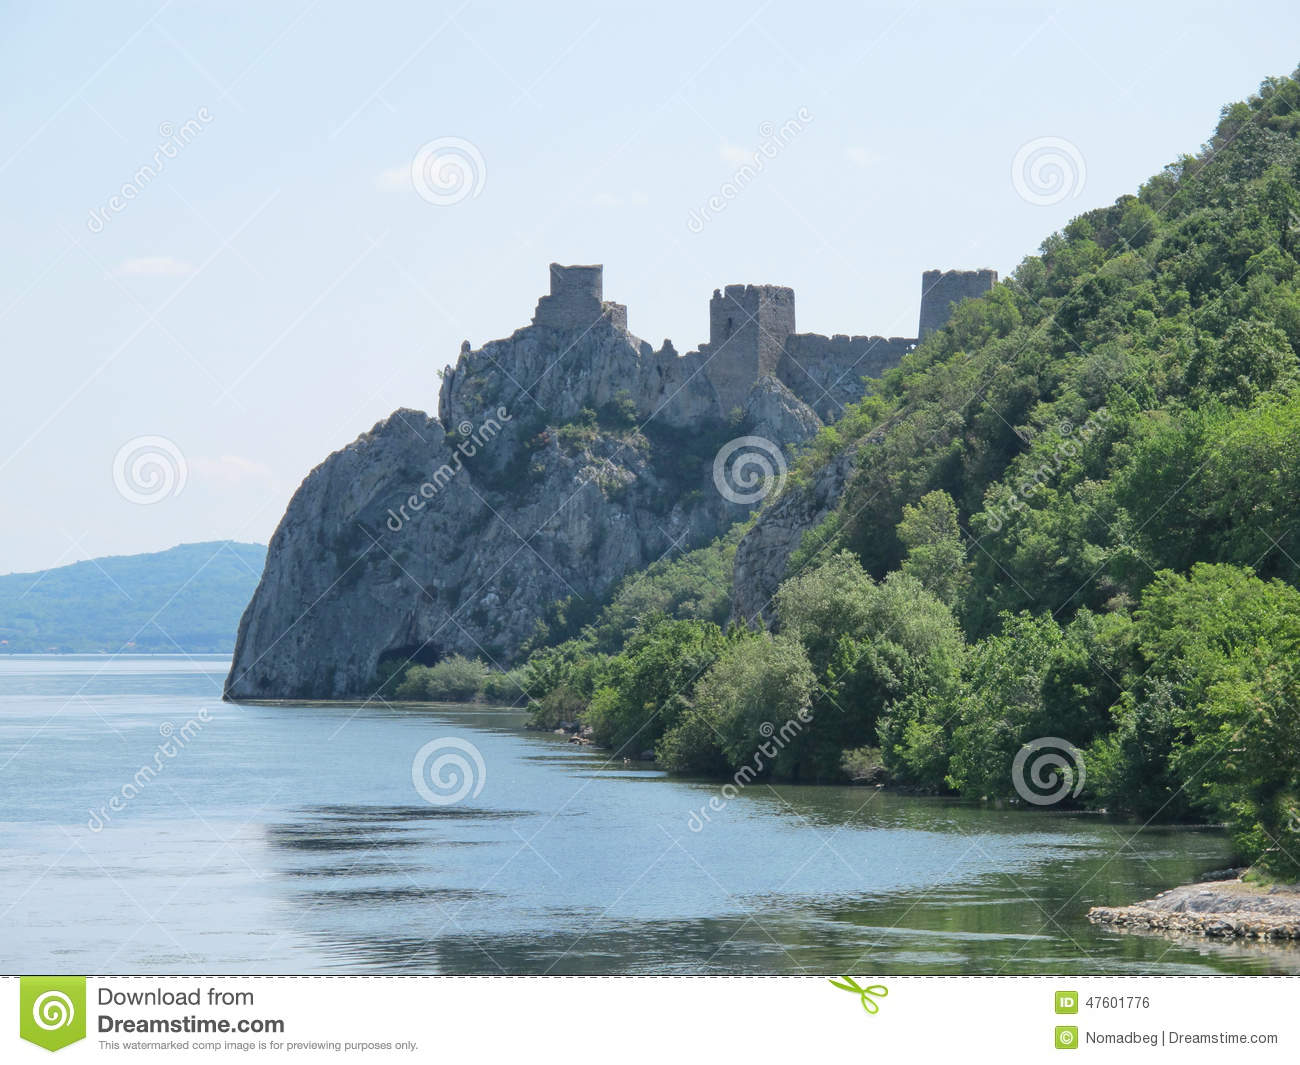 Medieval fort on a stoned hill over the River Danube